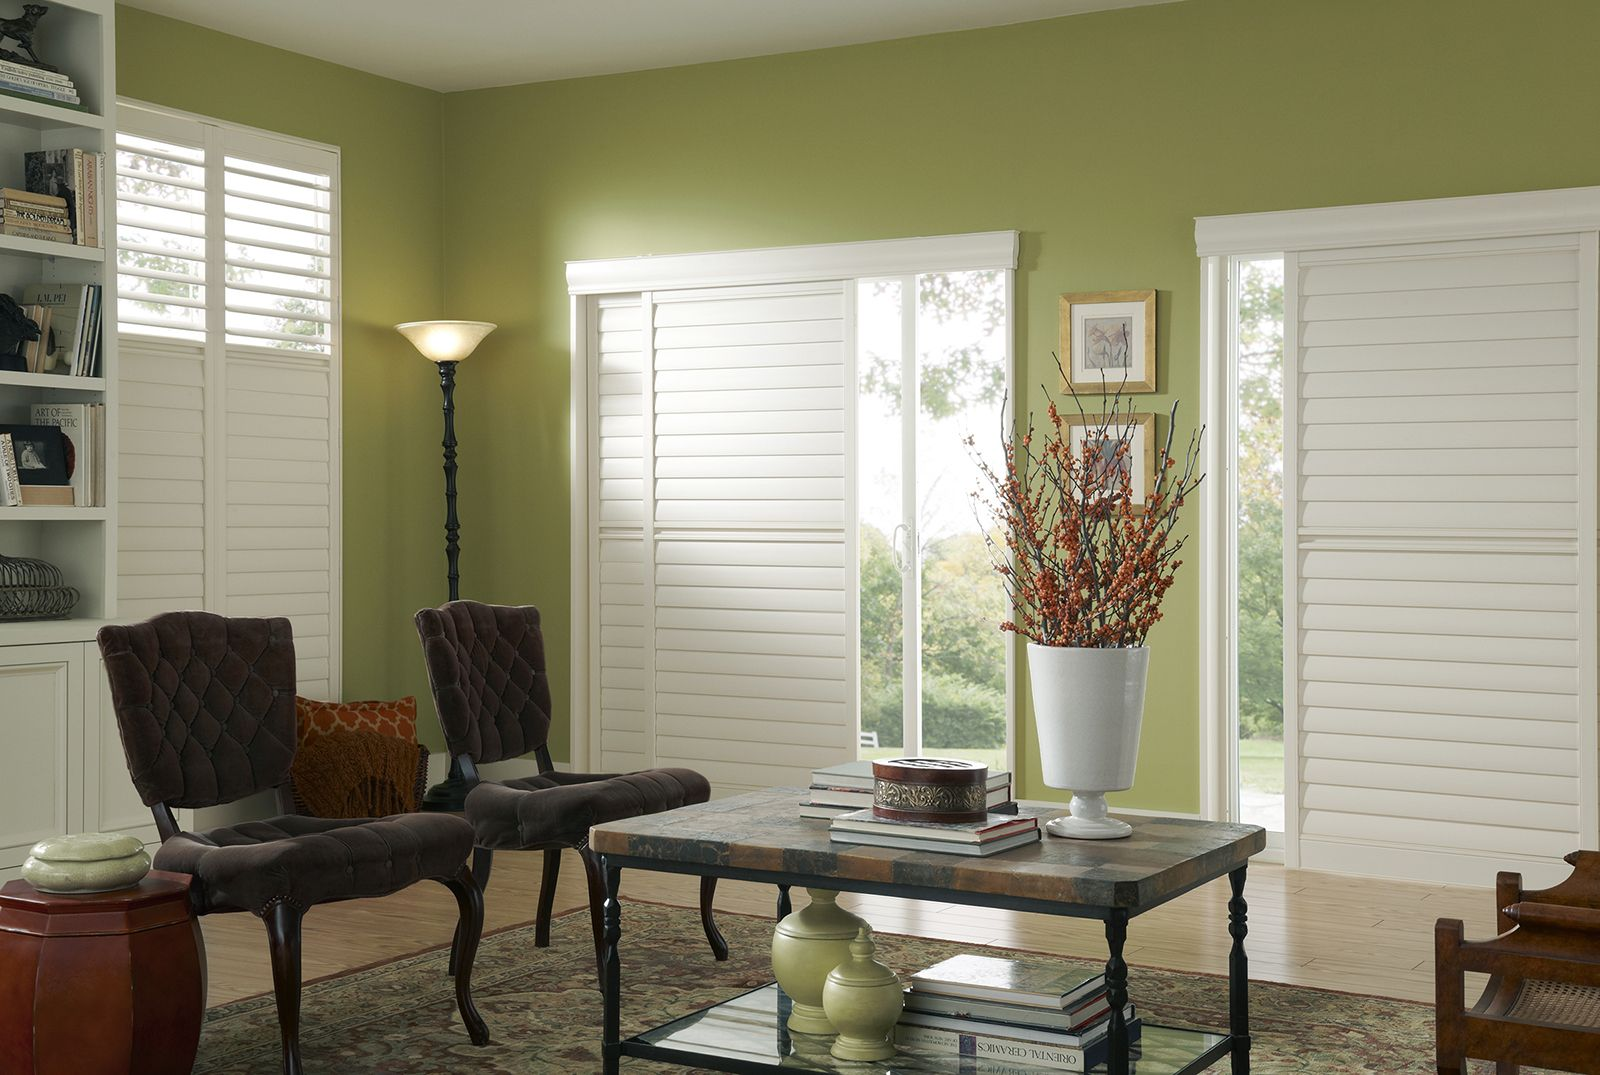 Vanilla • Two panel By-Pass • 3½ inch louver • 5 inch deco valance • Deluxe Divider Rail • Clearview® hidden rear tilt